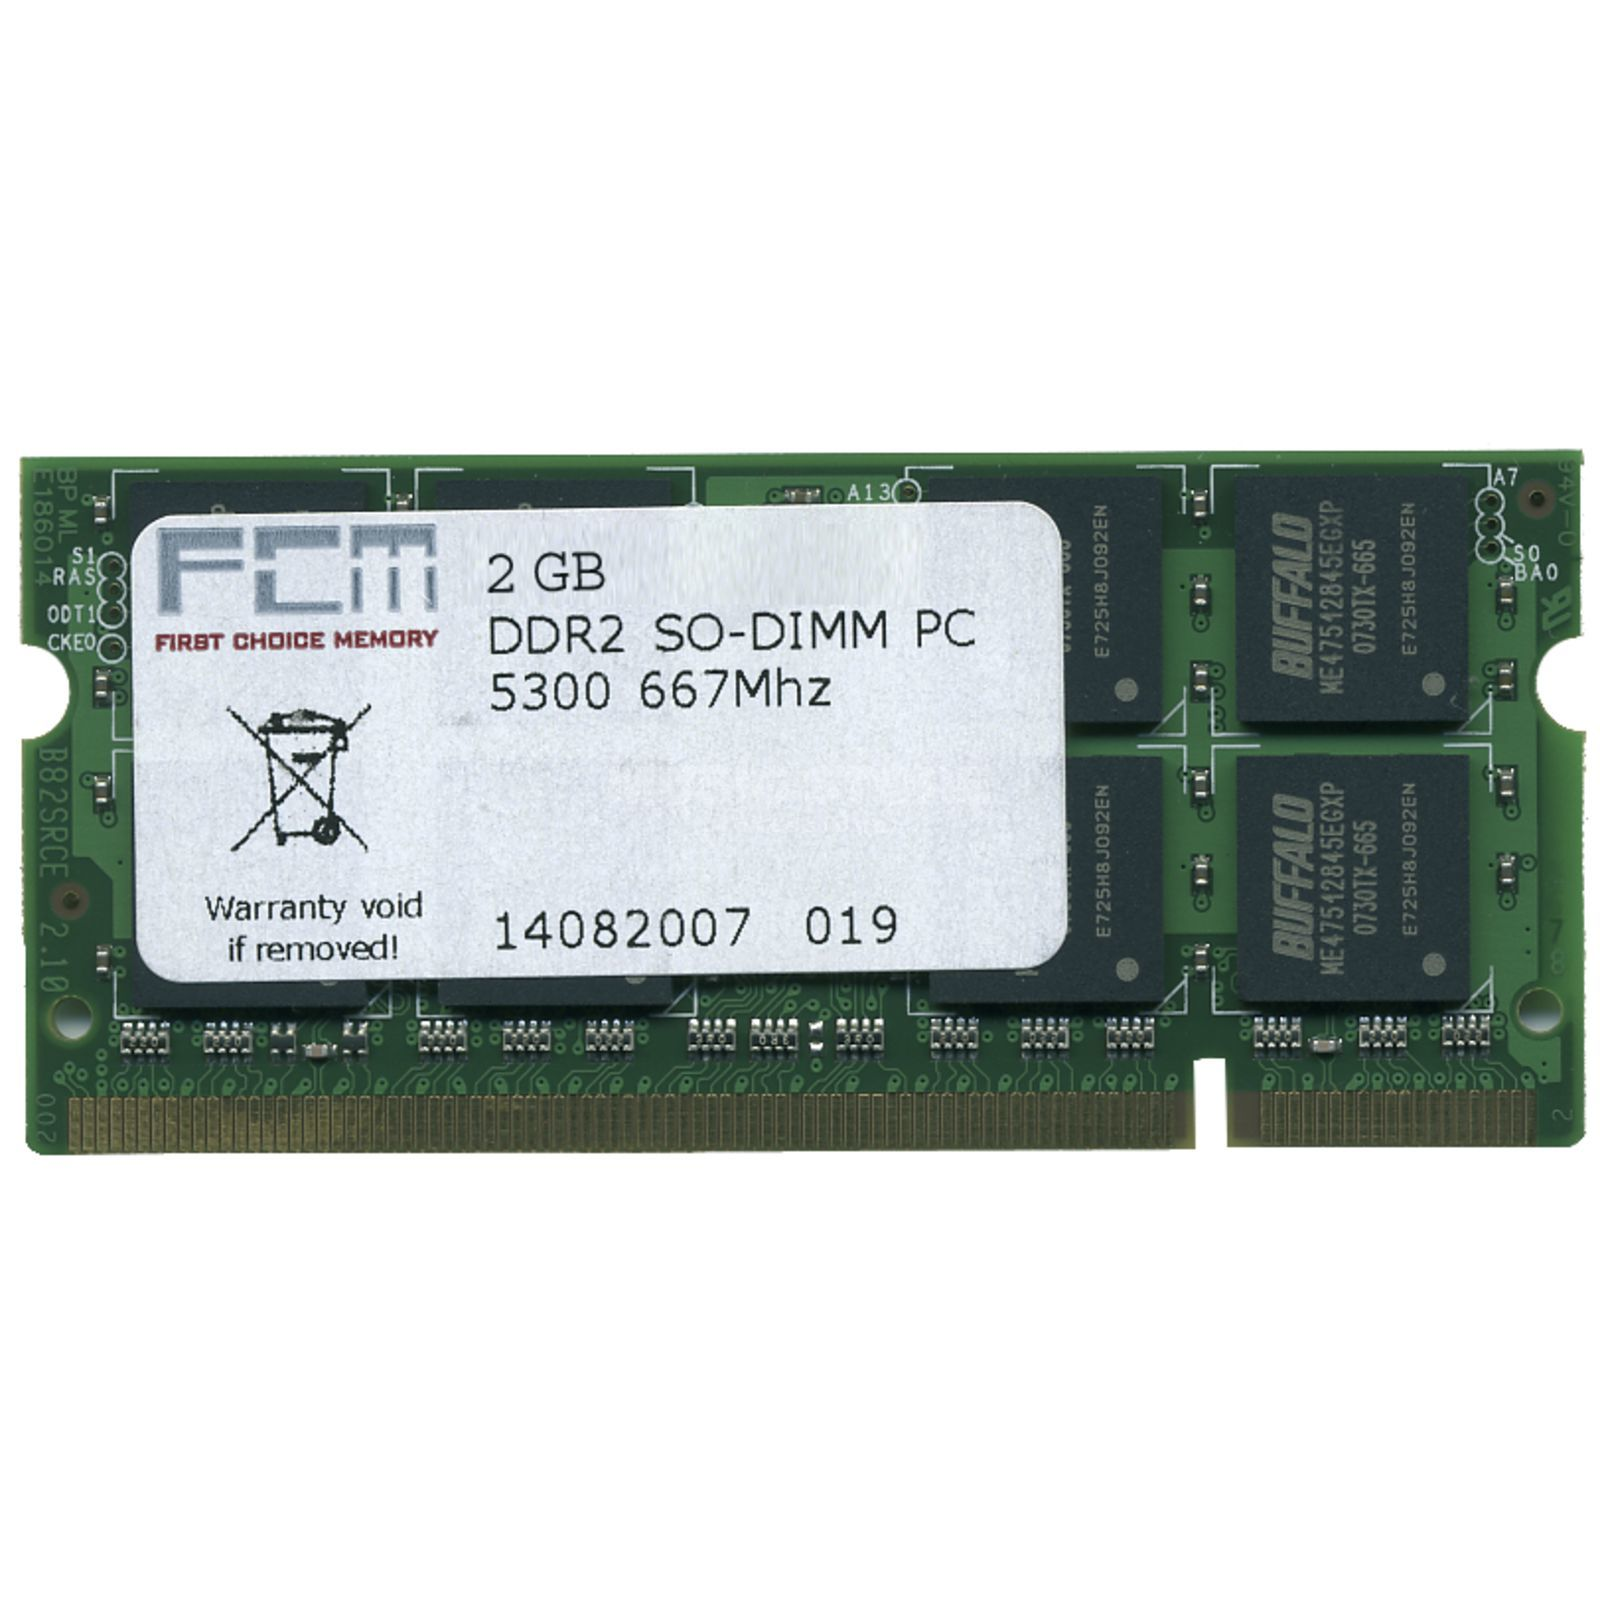 First Choice 2GB DDR2 PC5300 667GHz SO-DIMM MacBook / MBP 06/07 Produktbillede